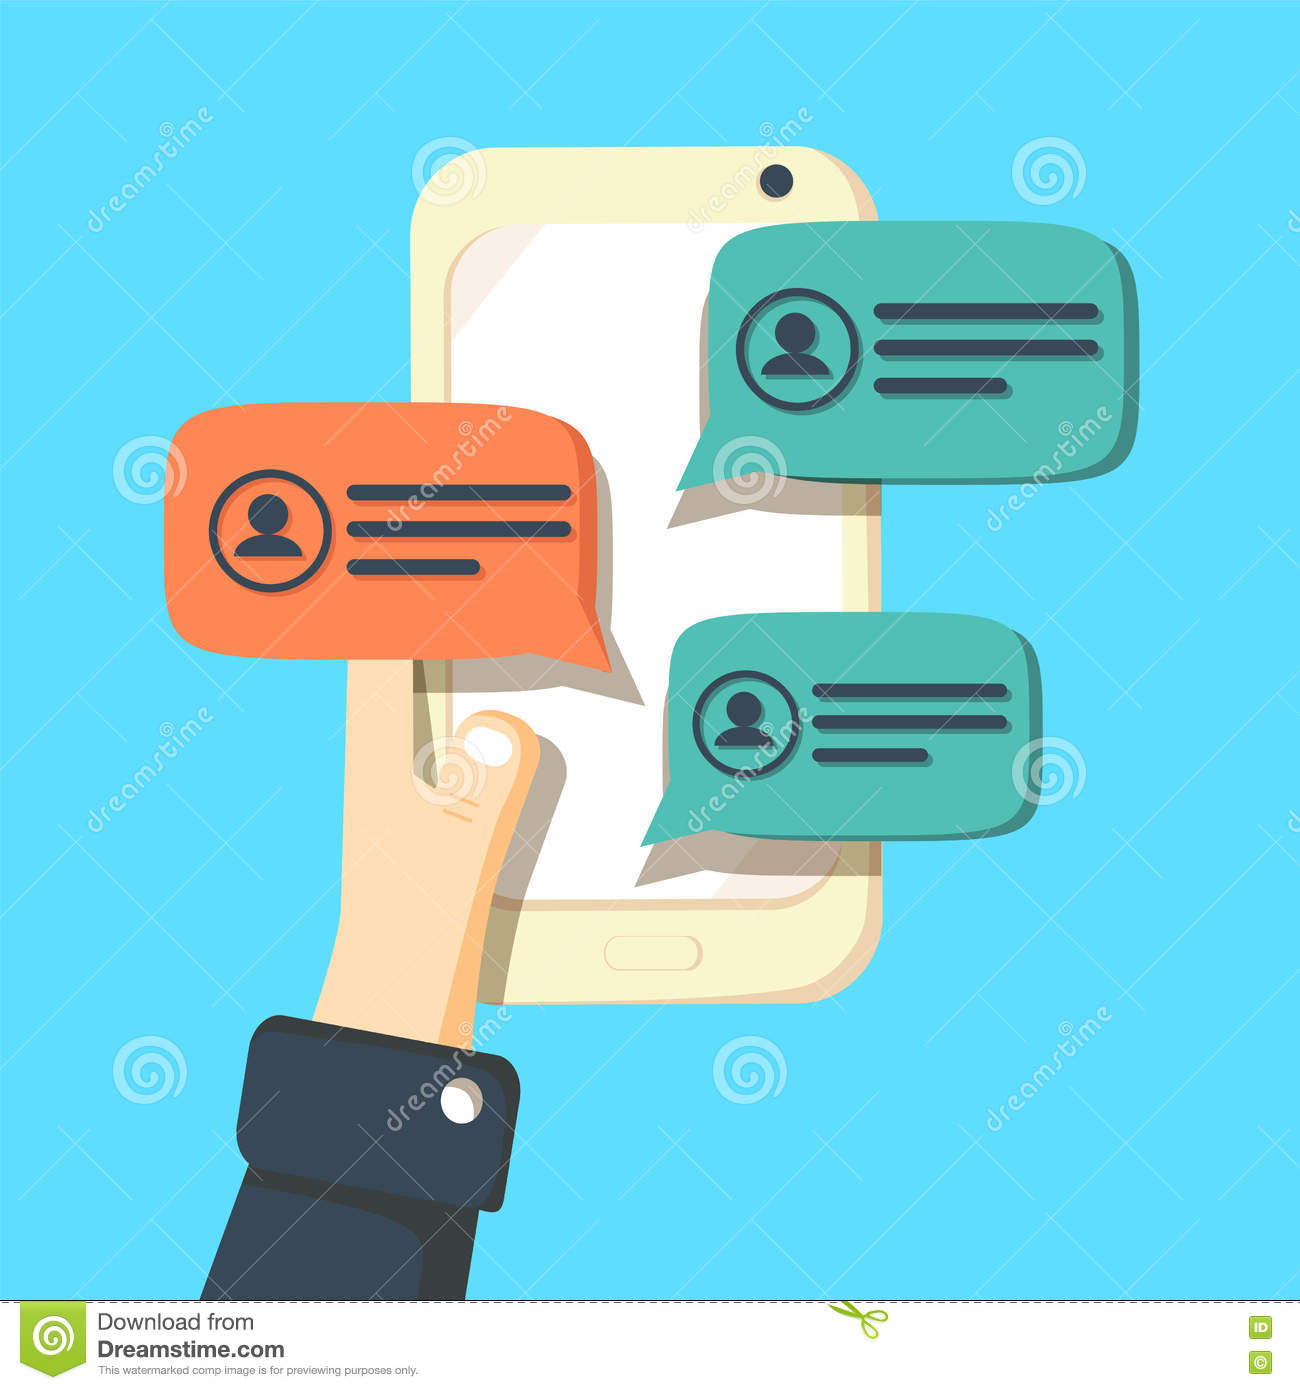 Mobile phone chat message notifications vector illustration